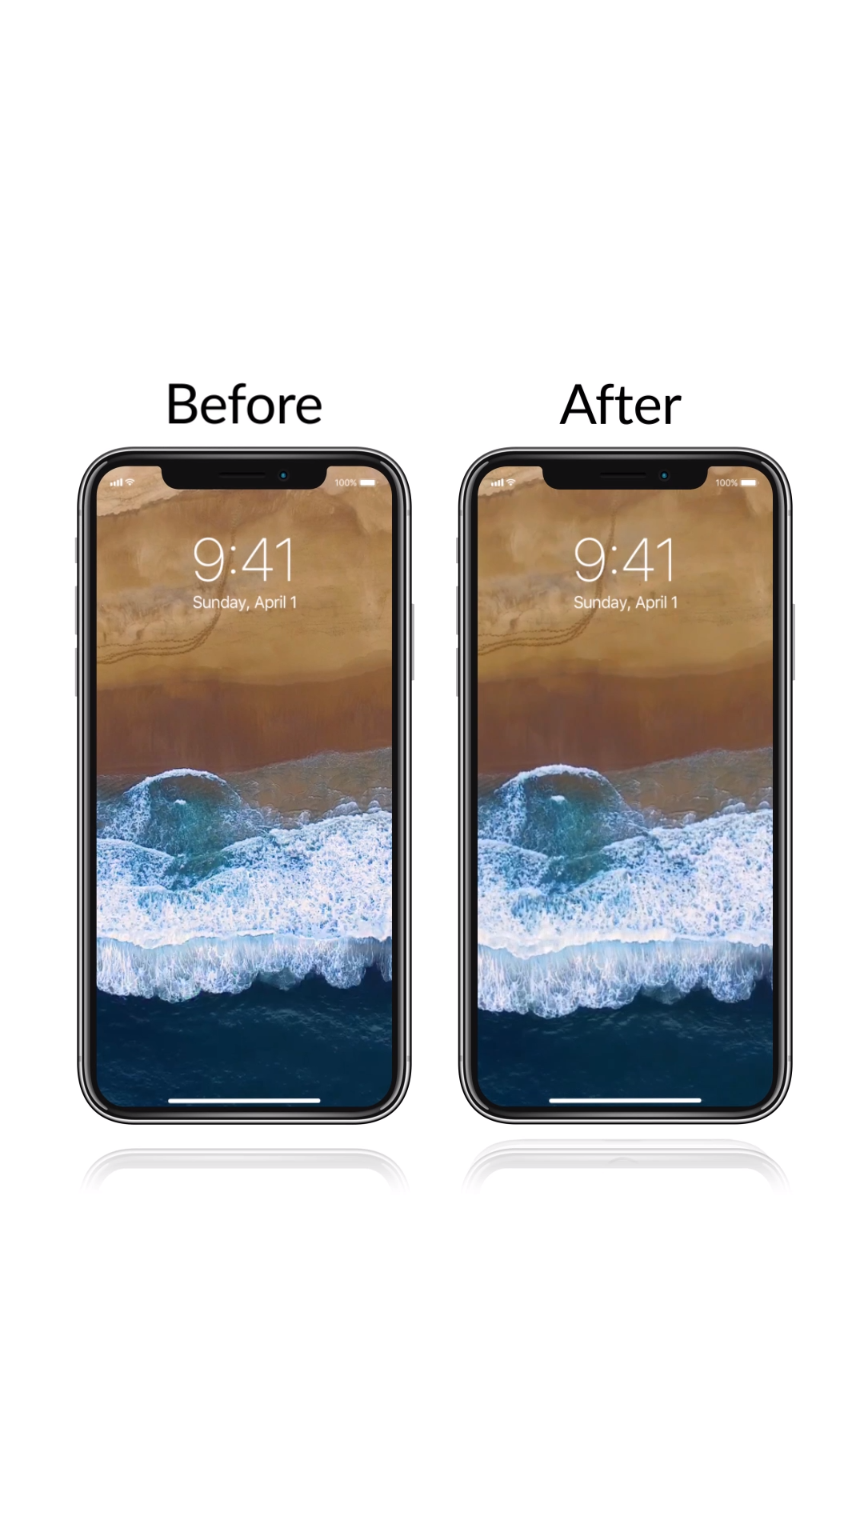 Liven Up Your Iphone With Moving Wallpapers Optimized For Ios 11 Get It Now Video Iphone Wallpaper Video Moving Wallpaper Iphone Moving Wallpapers